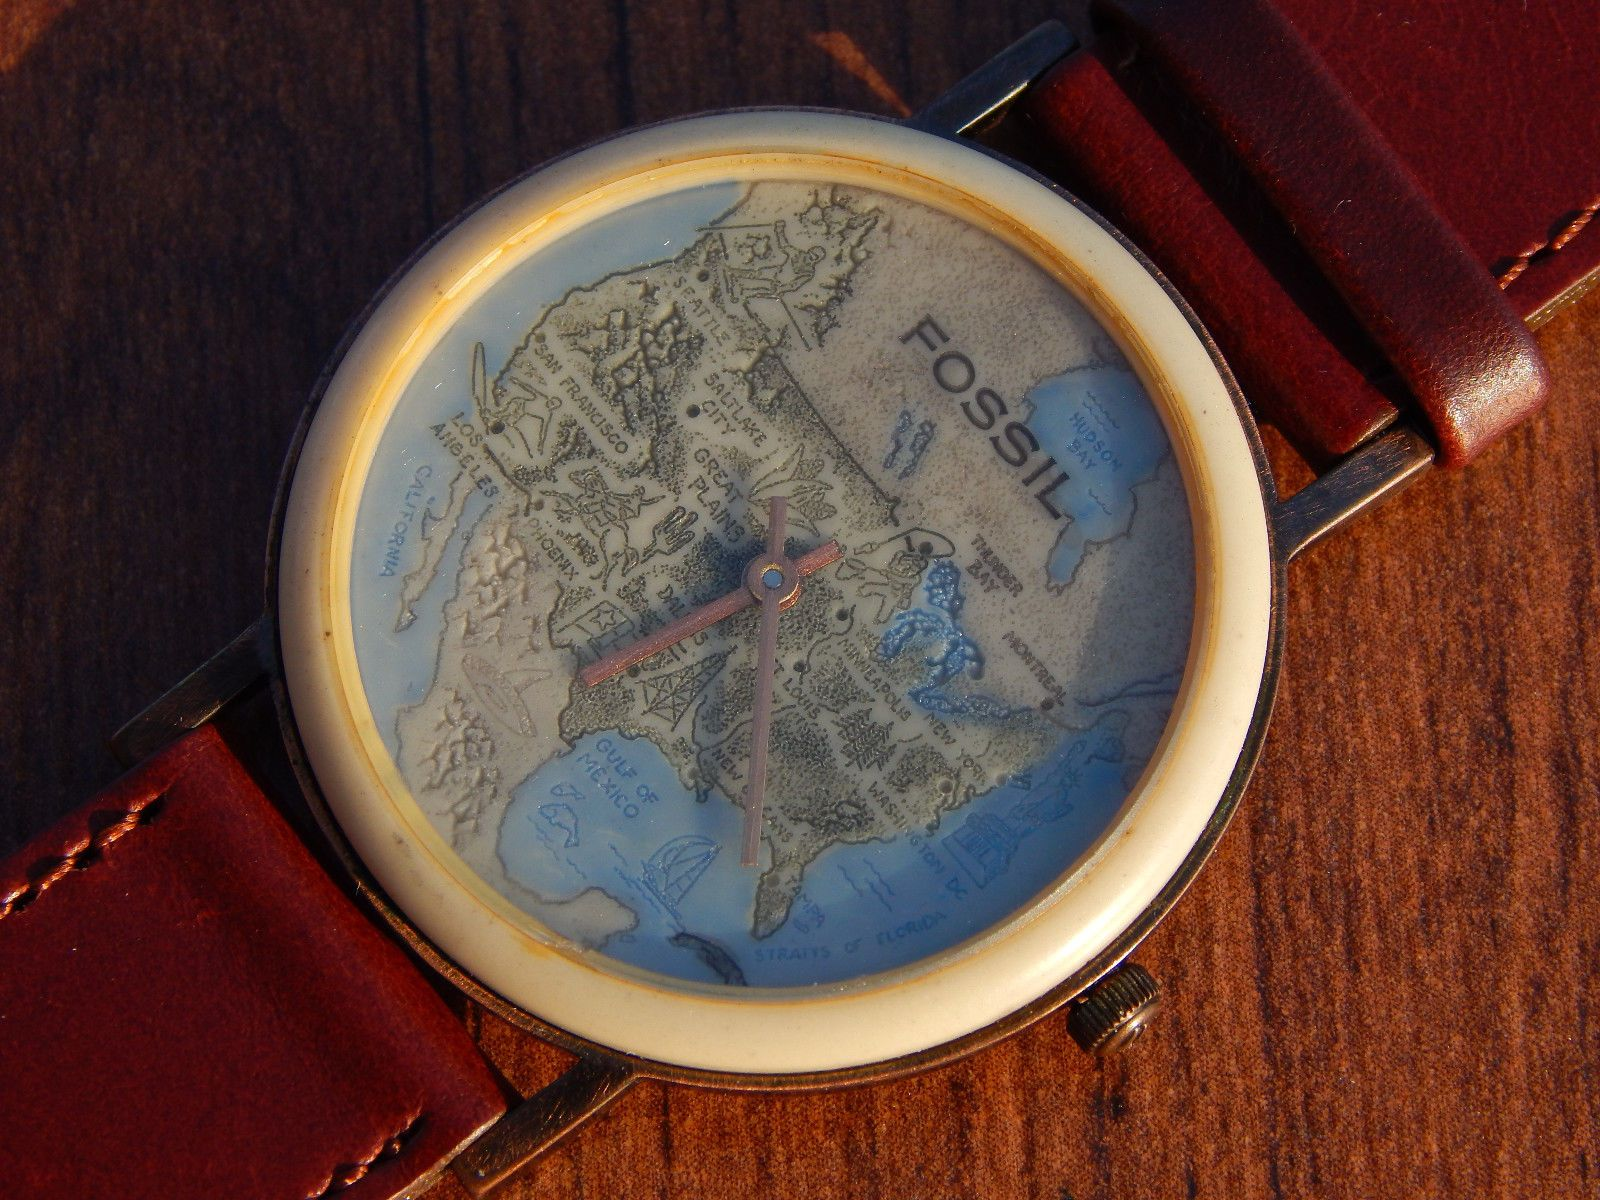 Ultra rare mens fossil stone rock globe map watch bw 6729 usa ultra rare mens fossil stone rock globe map watch bw 6729 usa mexico canada ebay gumiabroncs Image collections